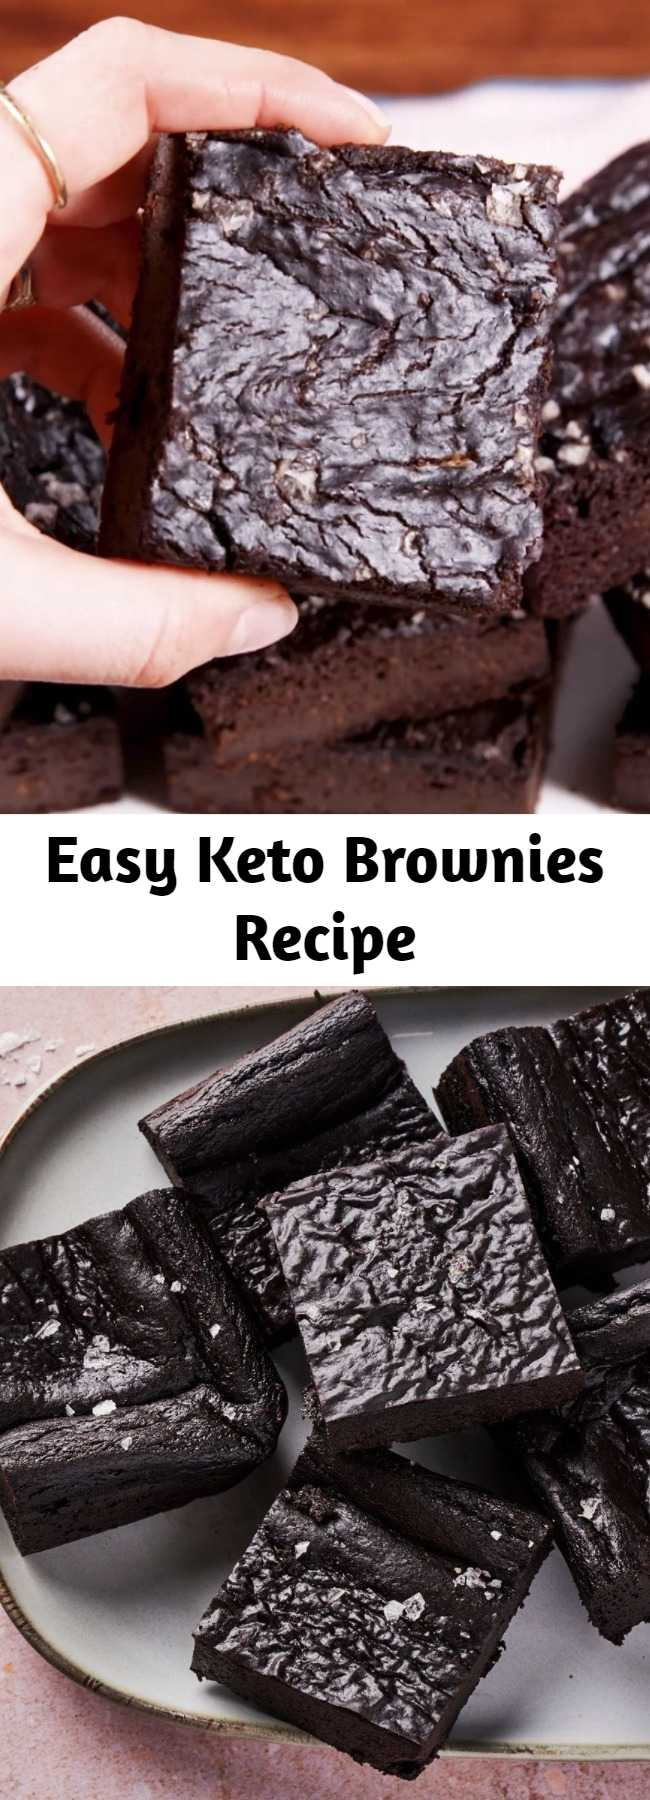 Easy Keto Brownies Recipe - Who says you can't eat brownies when you're on the keto diet?! These keto brownies are the best. When the chocolate craving is strong. #food #easyrecipe #desserts #keto #healthyeating